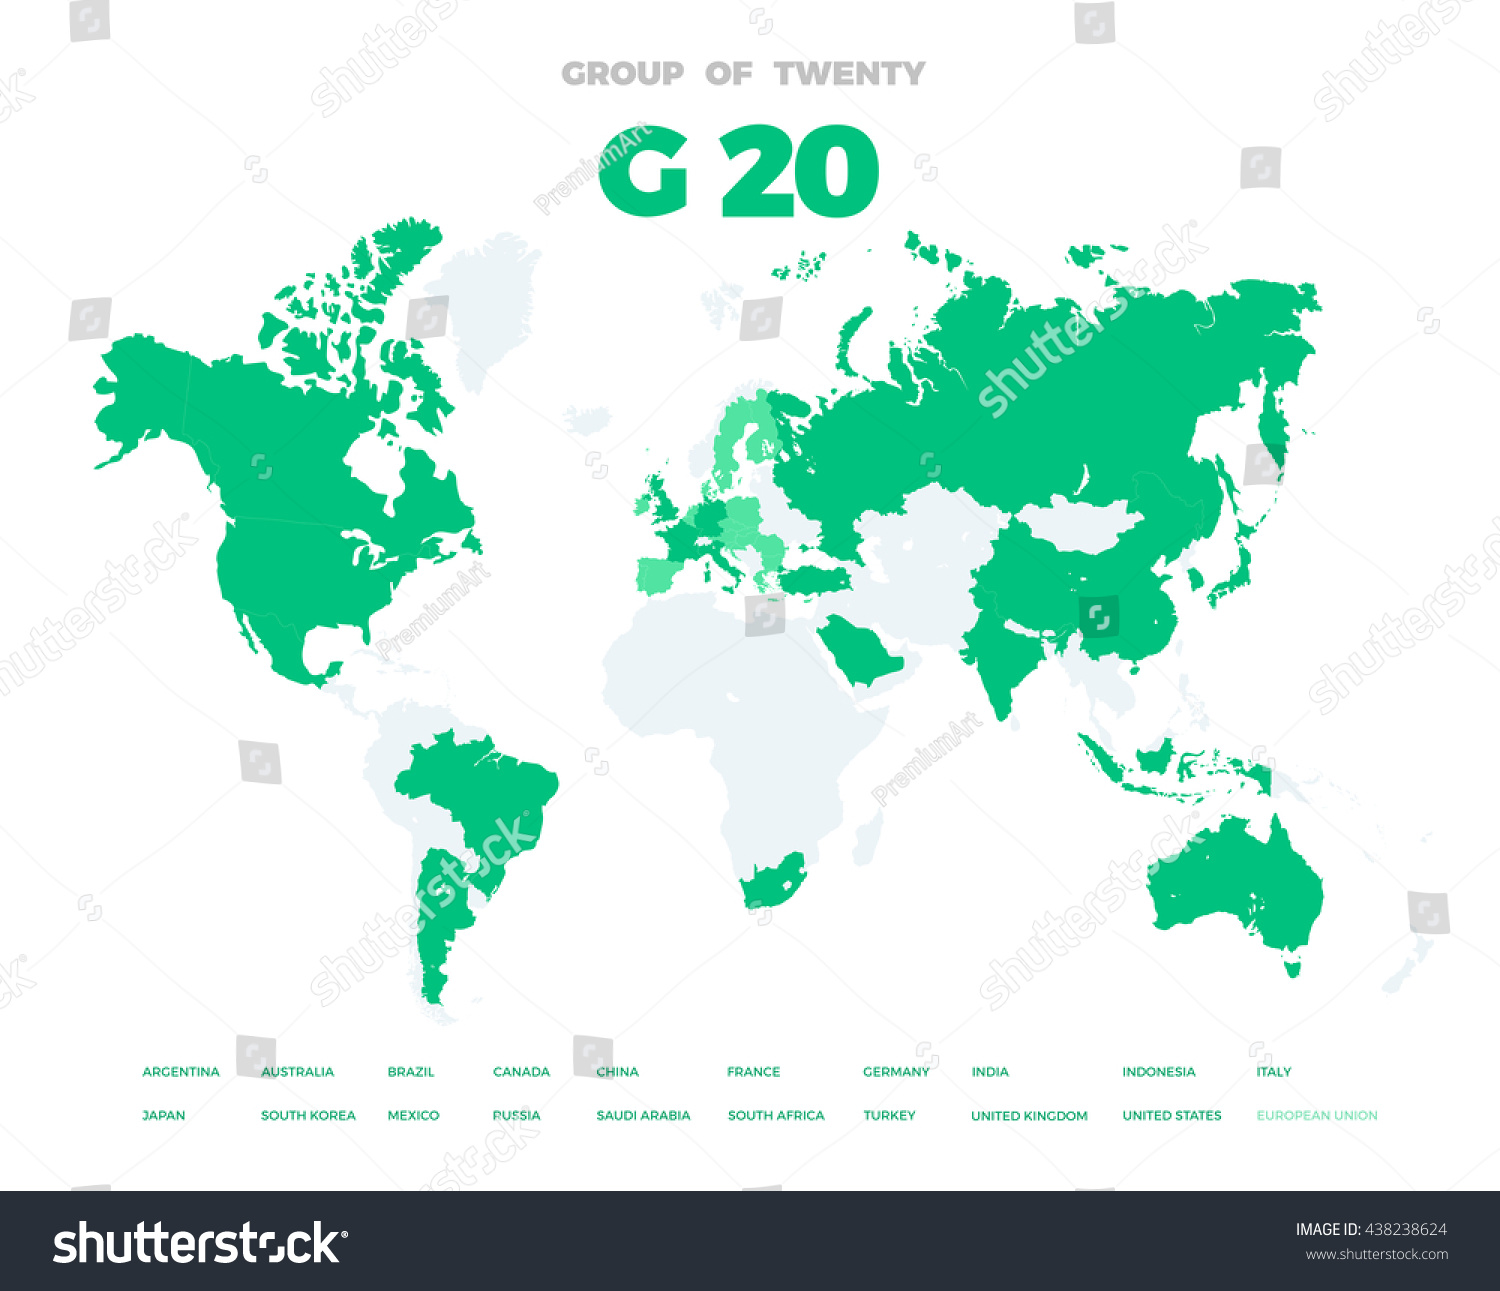 Group twenty countries on world map stock vector hd royalty free group of twenty countries on world map vector template g20 infographic design illustration gumiabroncs Images